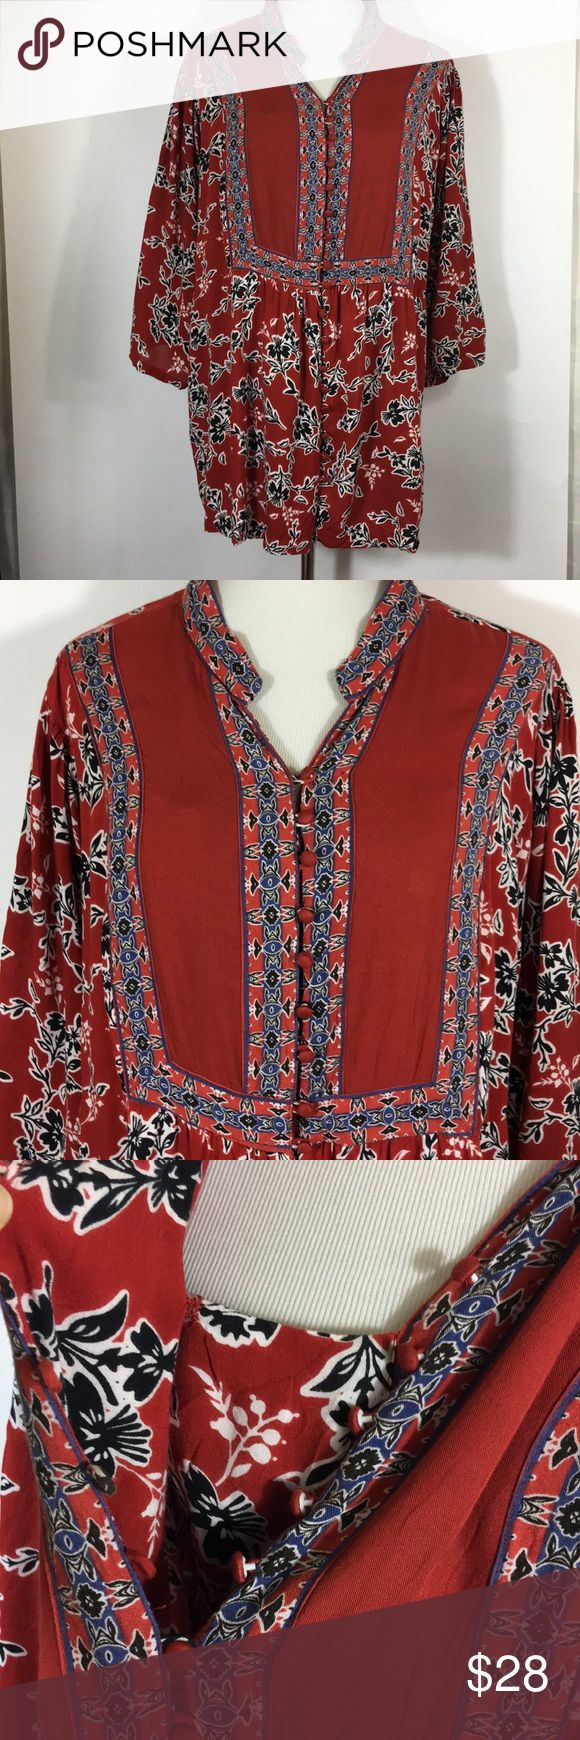 """Plus Size Peasant Blouse 1X 22/24 Flowing Long Top Content tag is missing but it feels like a soft rayon.  Deep warm brick red background with black, white and blue floral pattern  Fabric covered buttons all the way down the front with a modesty panel that snaps behind the placket. If a button comes undone you won't be exposed.  Size 1X 22/24 Woman Within 27.5"""" across underarms  26"""" across at waist 35"""" across bottom hem  30"""" long shoulder to hem Machine washable, air dry Woman Within Tops…"""